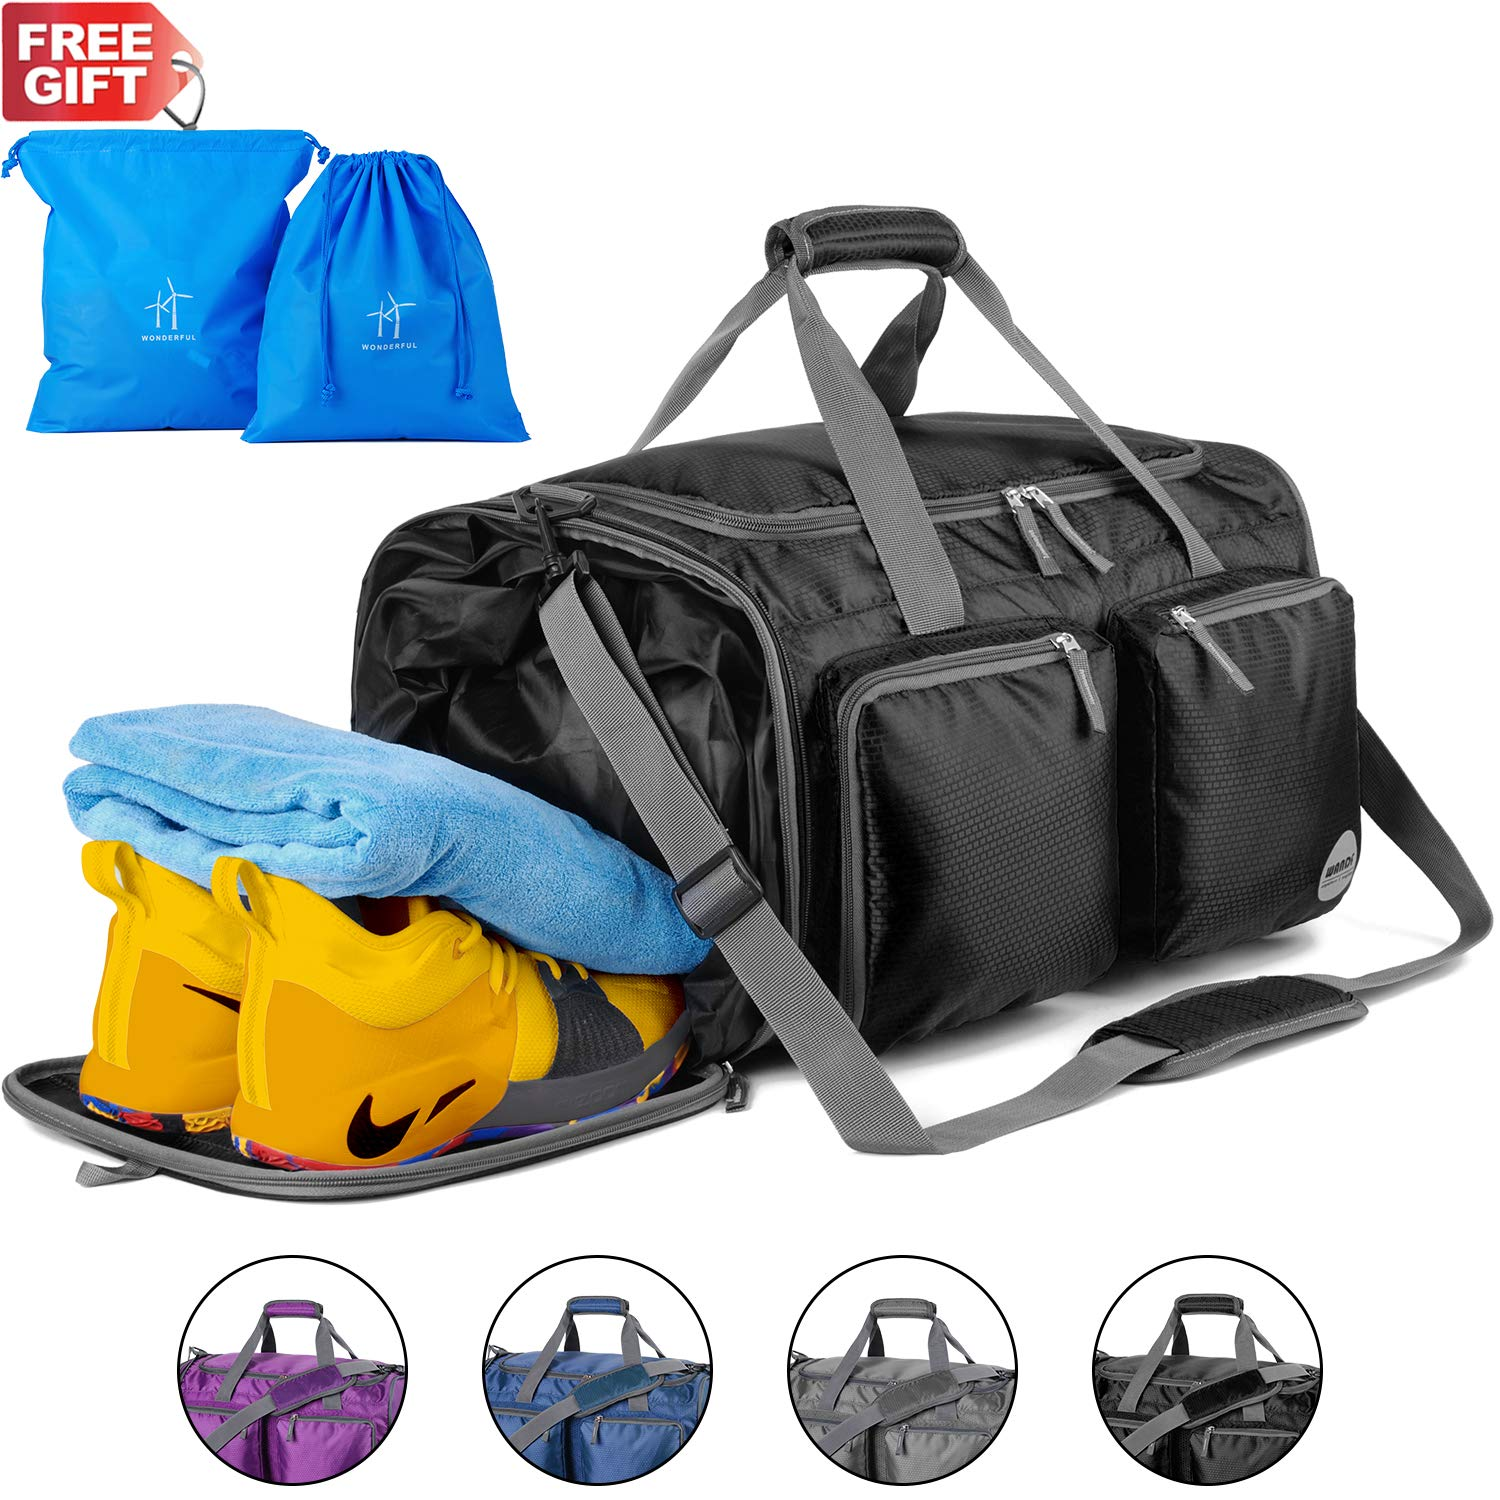 Foldable Sports Gym Bag with Wet String Bags Shoes Compartment Travel Duffel for Men and Women